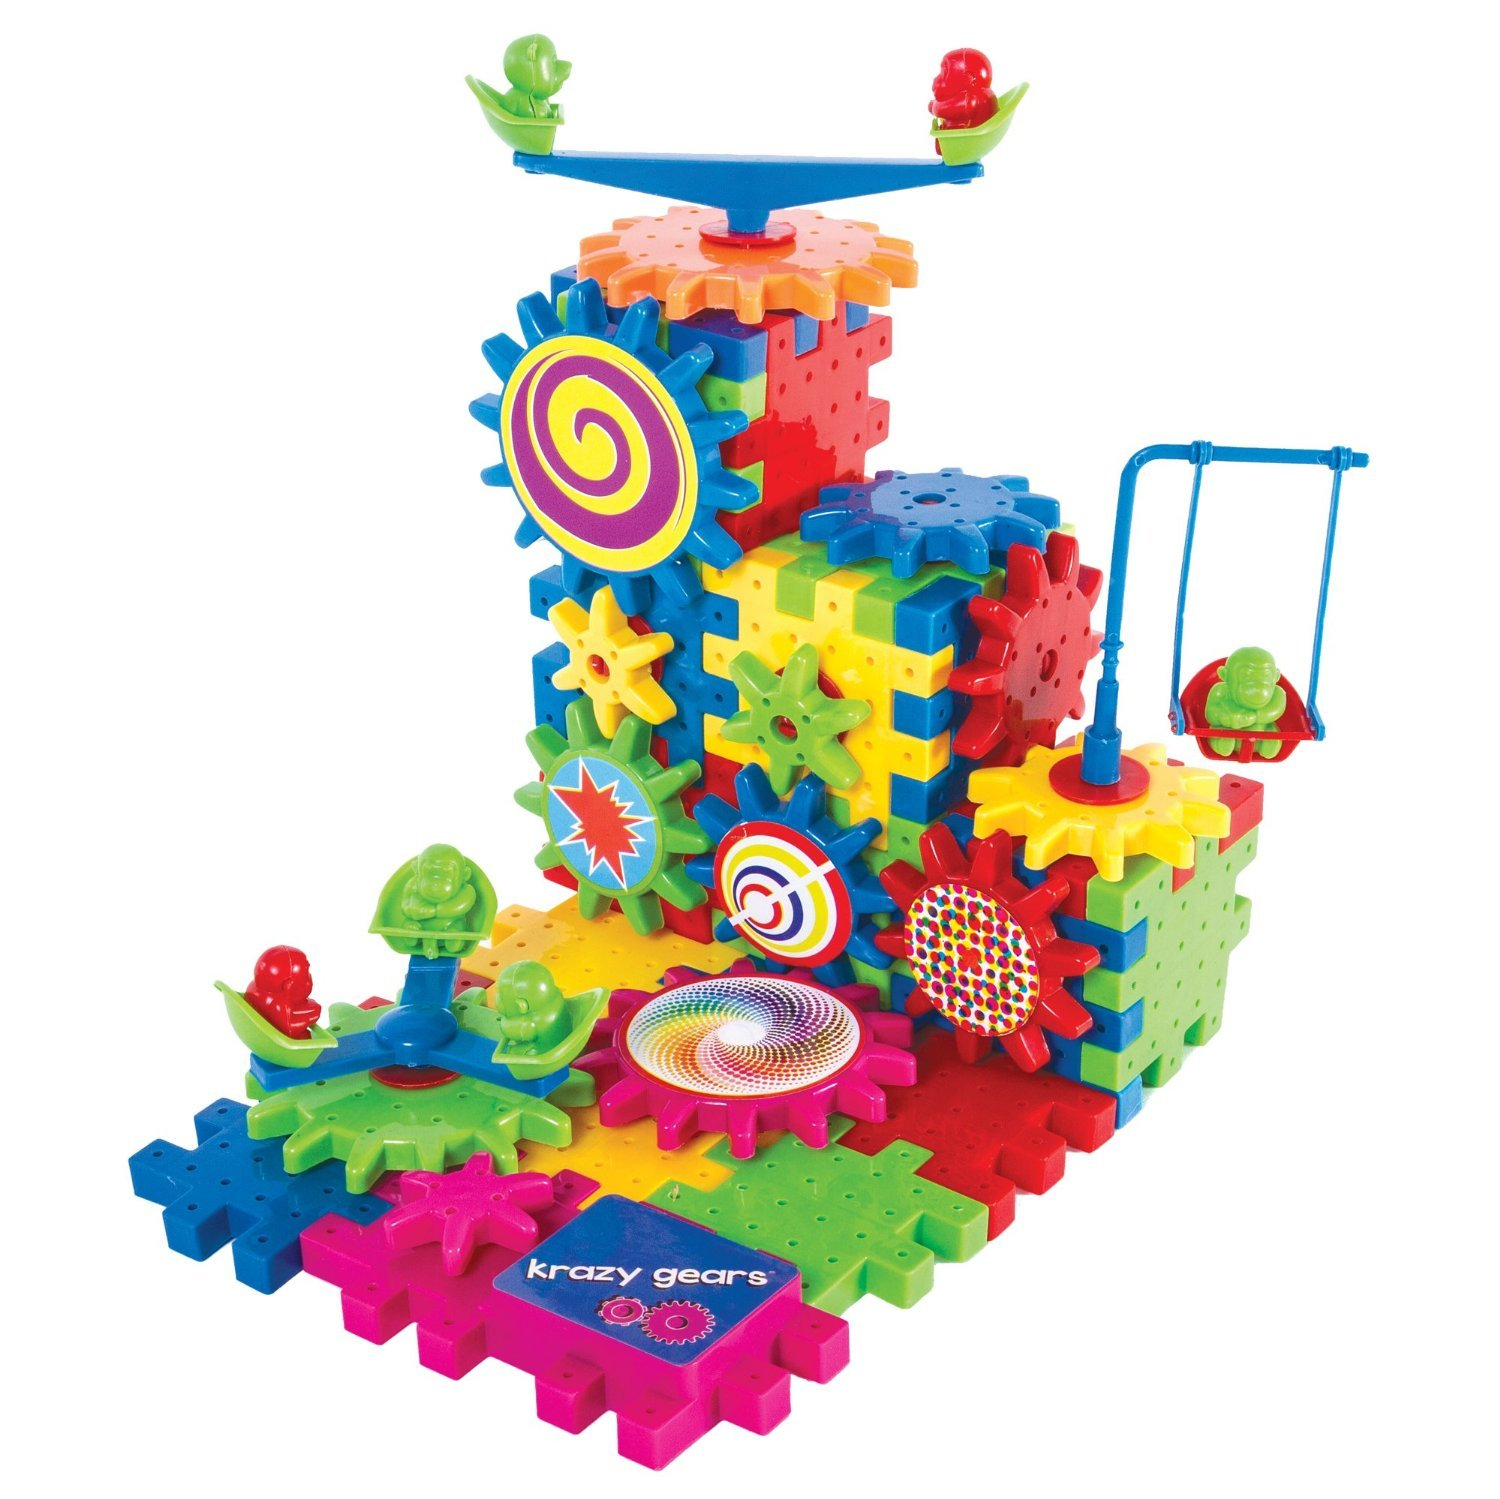 Amazon Krazy Gears Gear Building Toy Set Interlocking